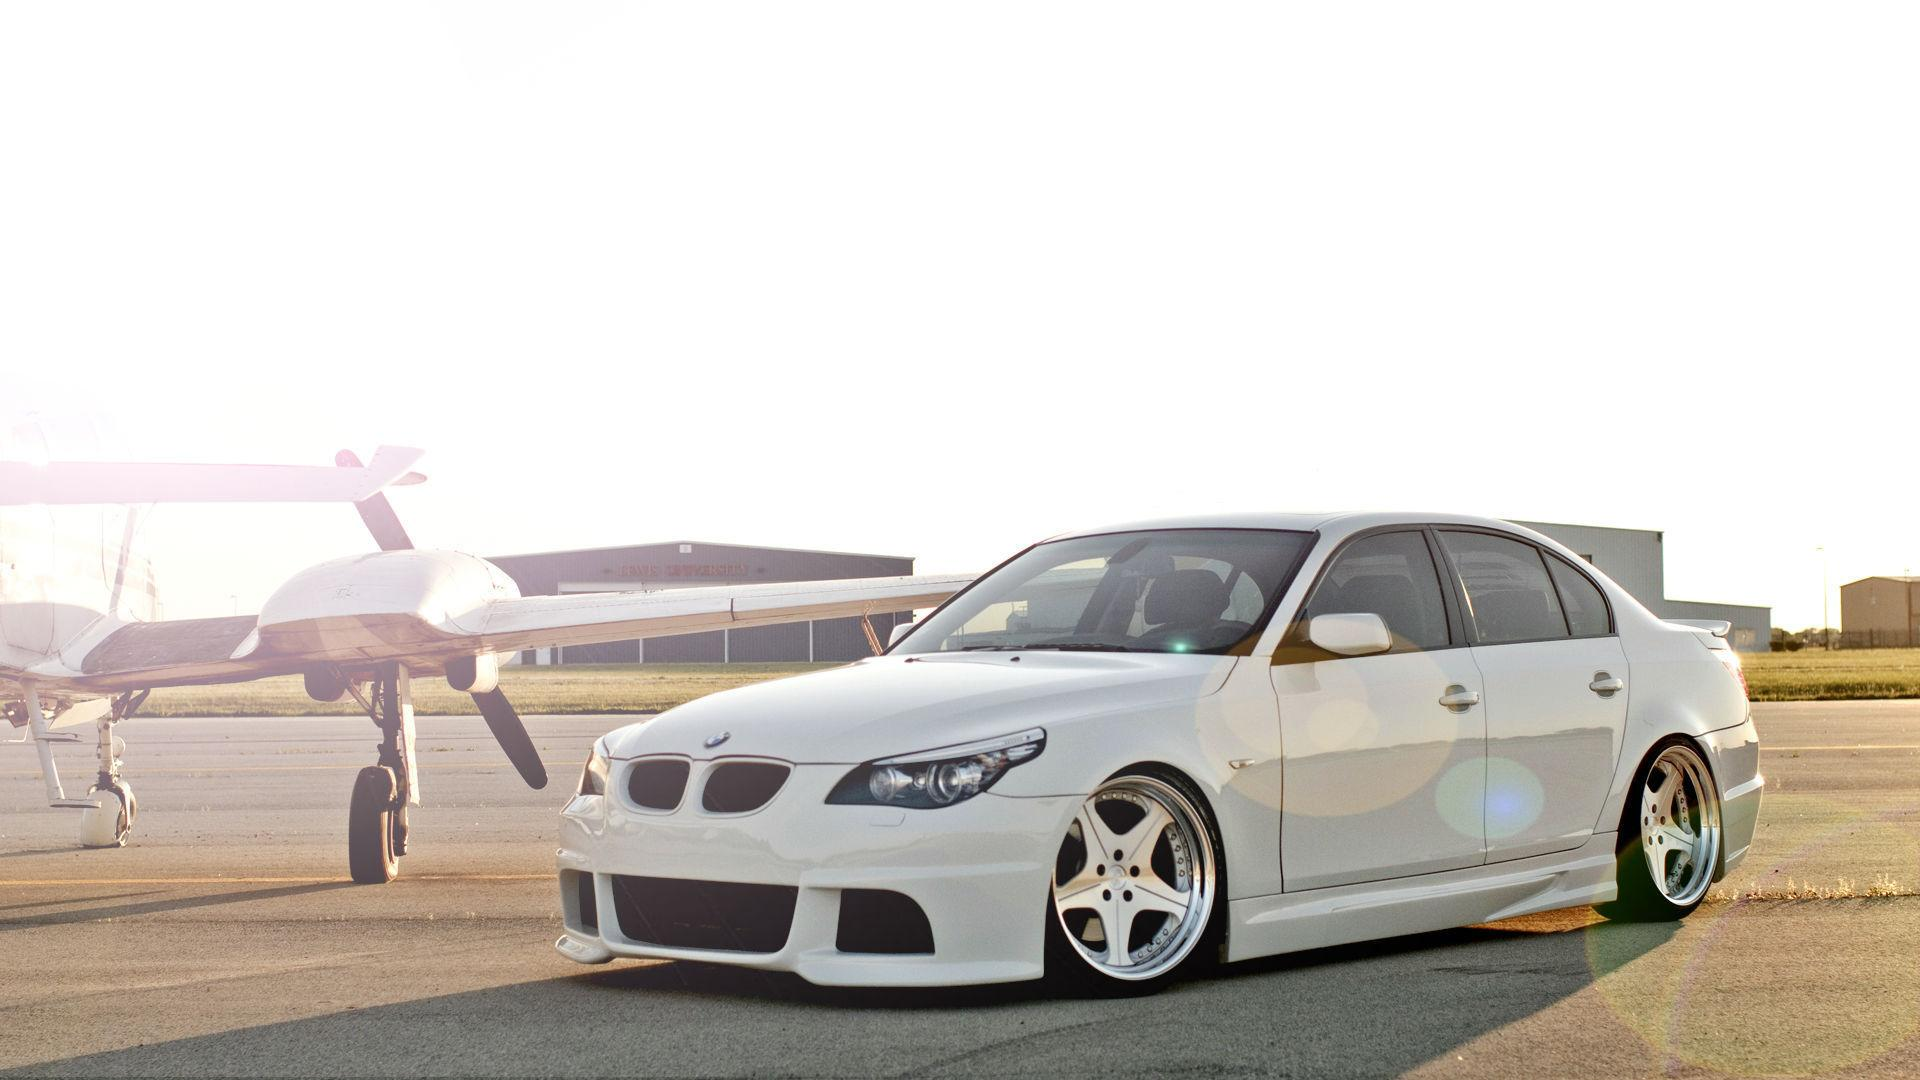 M5 E60 Desktop Beautiful Sun White Bmw Car 970x550 Download Hd Wallpaper Wallpapertip